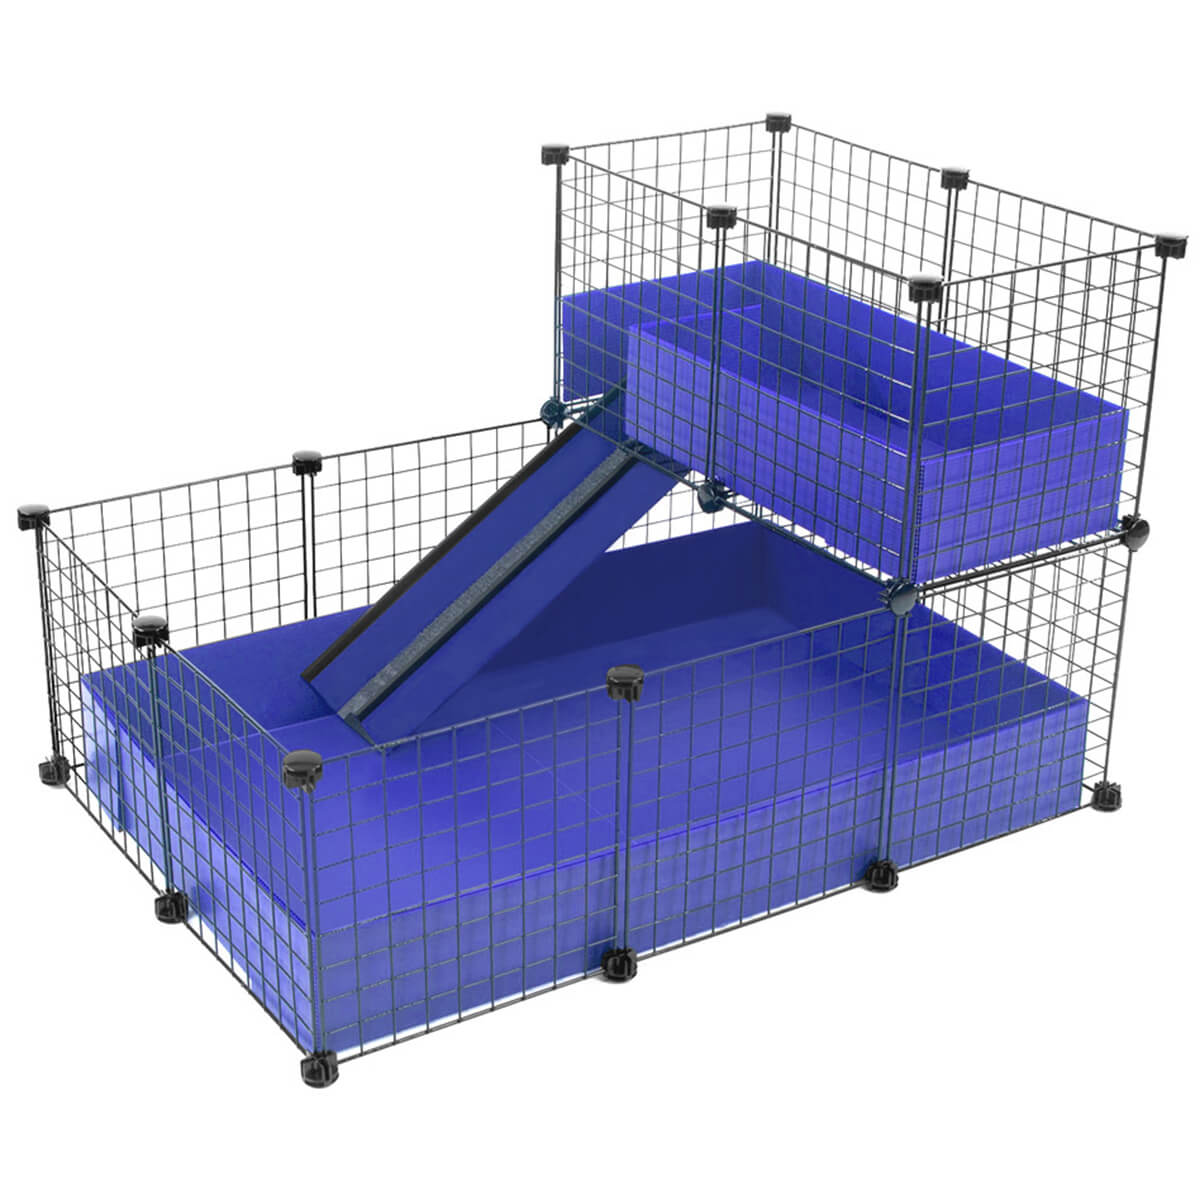 Small 2x3 grids loft deluxe cages c c cages for for Making a c c cage